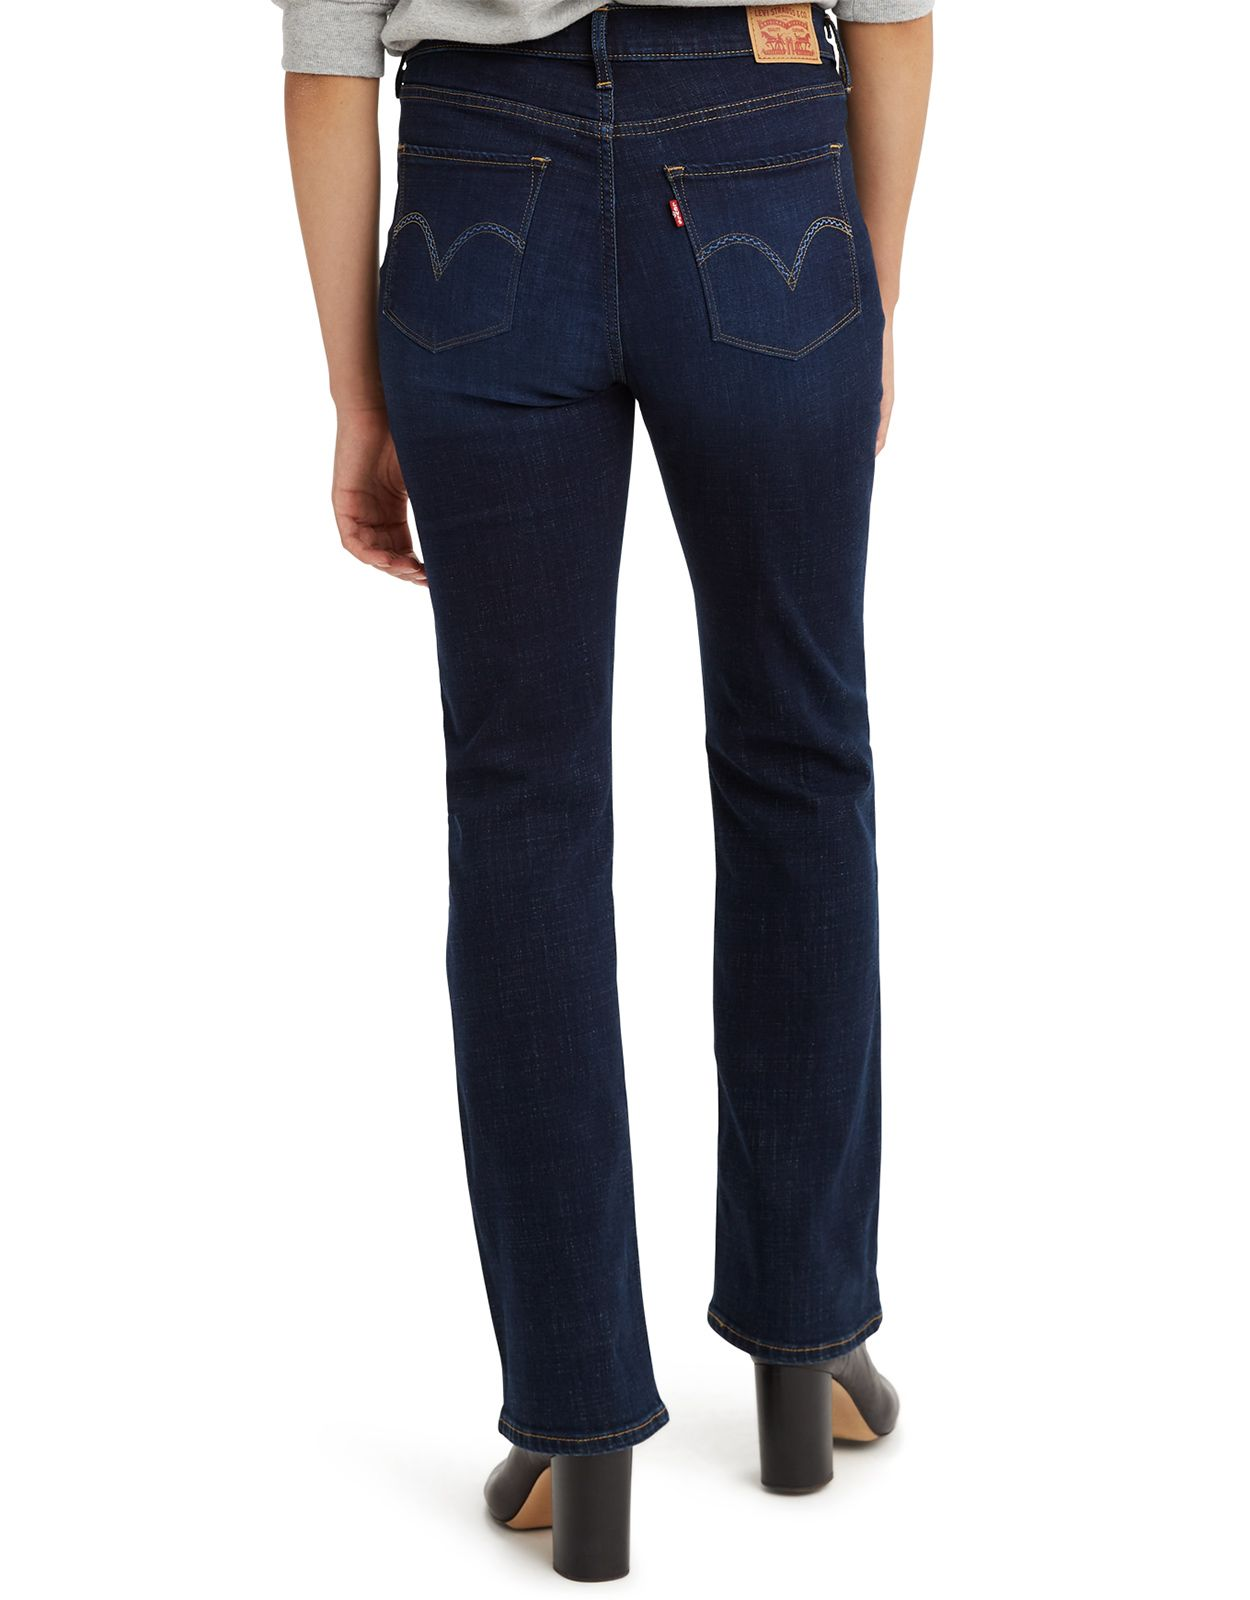 Levi's Women's Classic Bootcut Stretch Mid Rise Easy Fit Boot Cut Jeans - Cobalt Distress